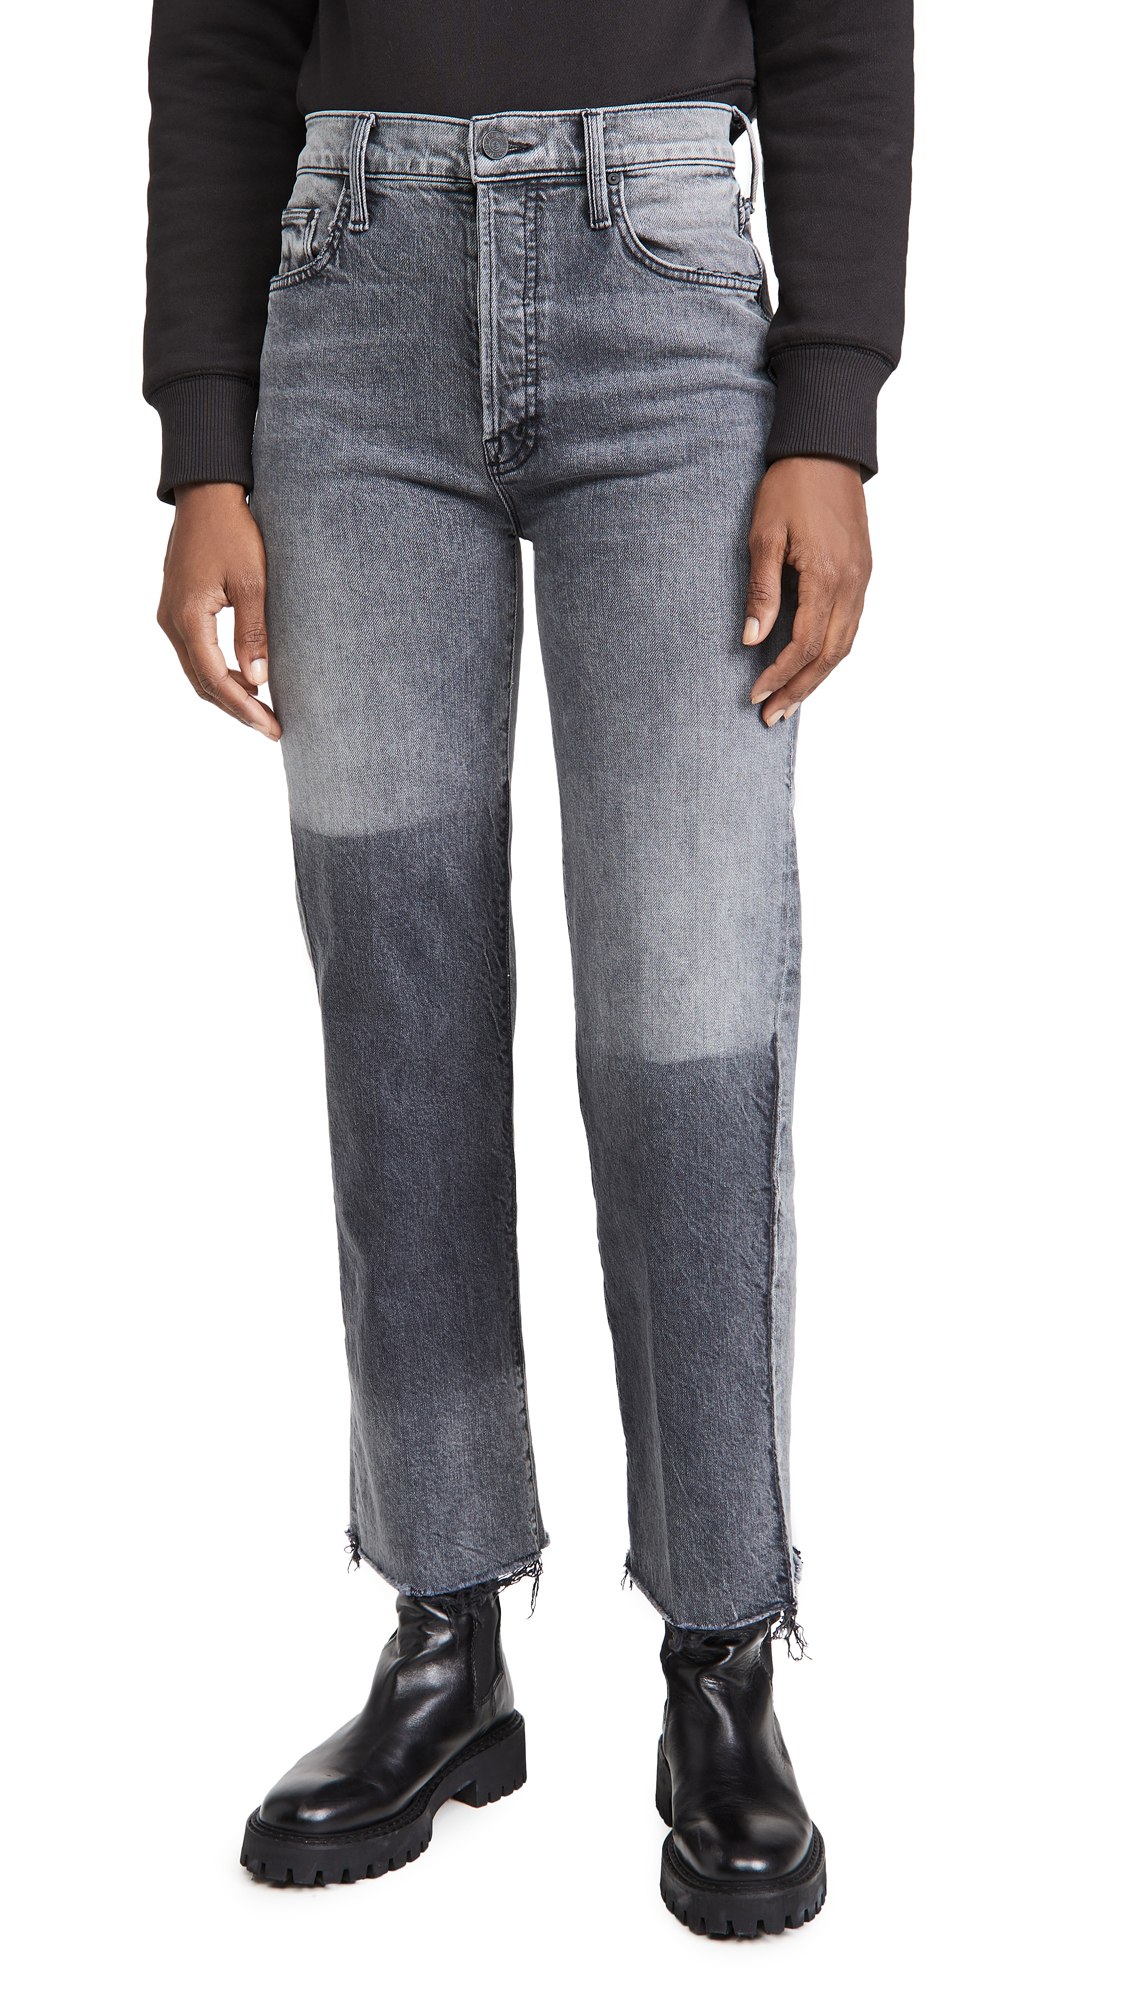 MOTHER MOTHER Superior The Rambler Ankle Fray Jeans